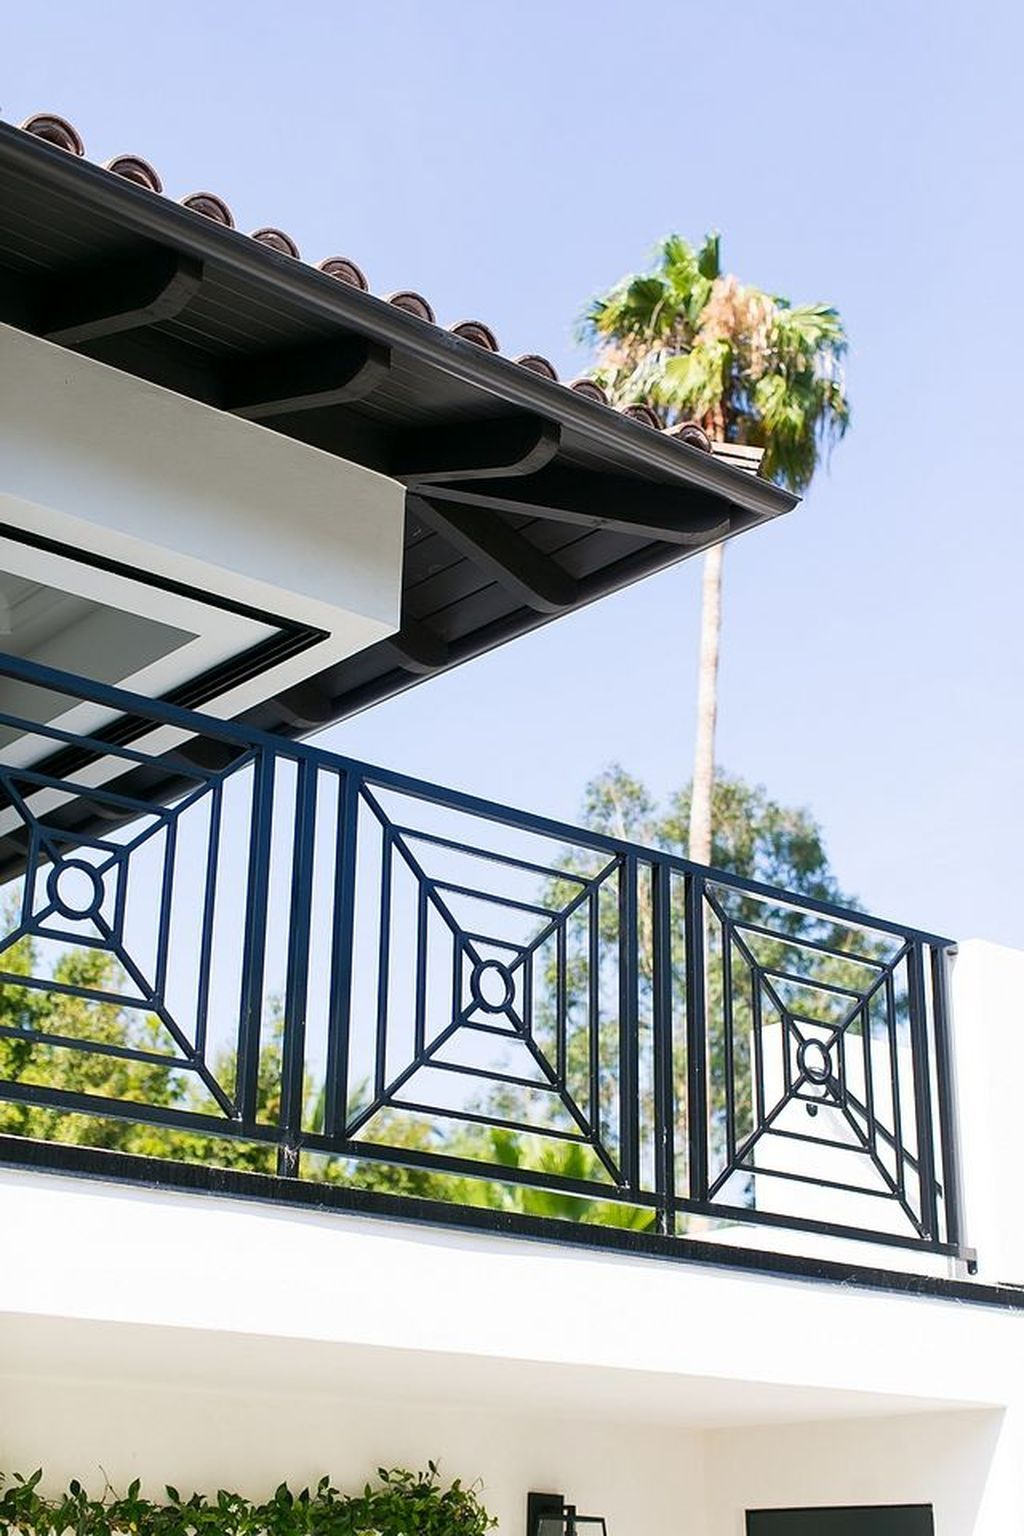 35 Awesome Balcony Railing Design Ideas To Beautify Your ...